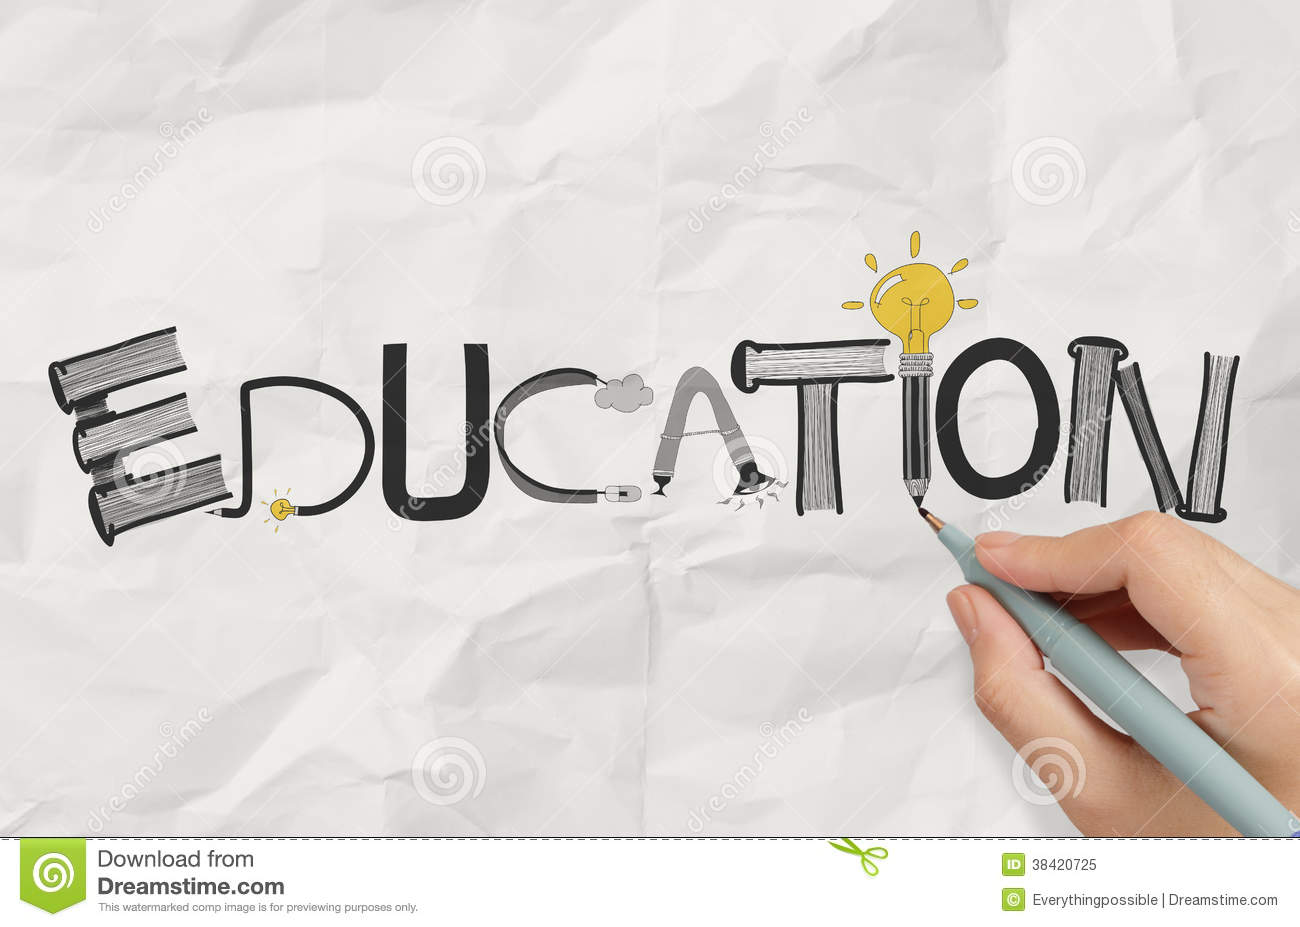 drawing-graphic-design-education-word-business-hand-crumpled-paper-as-concept-38420725.jpg